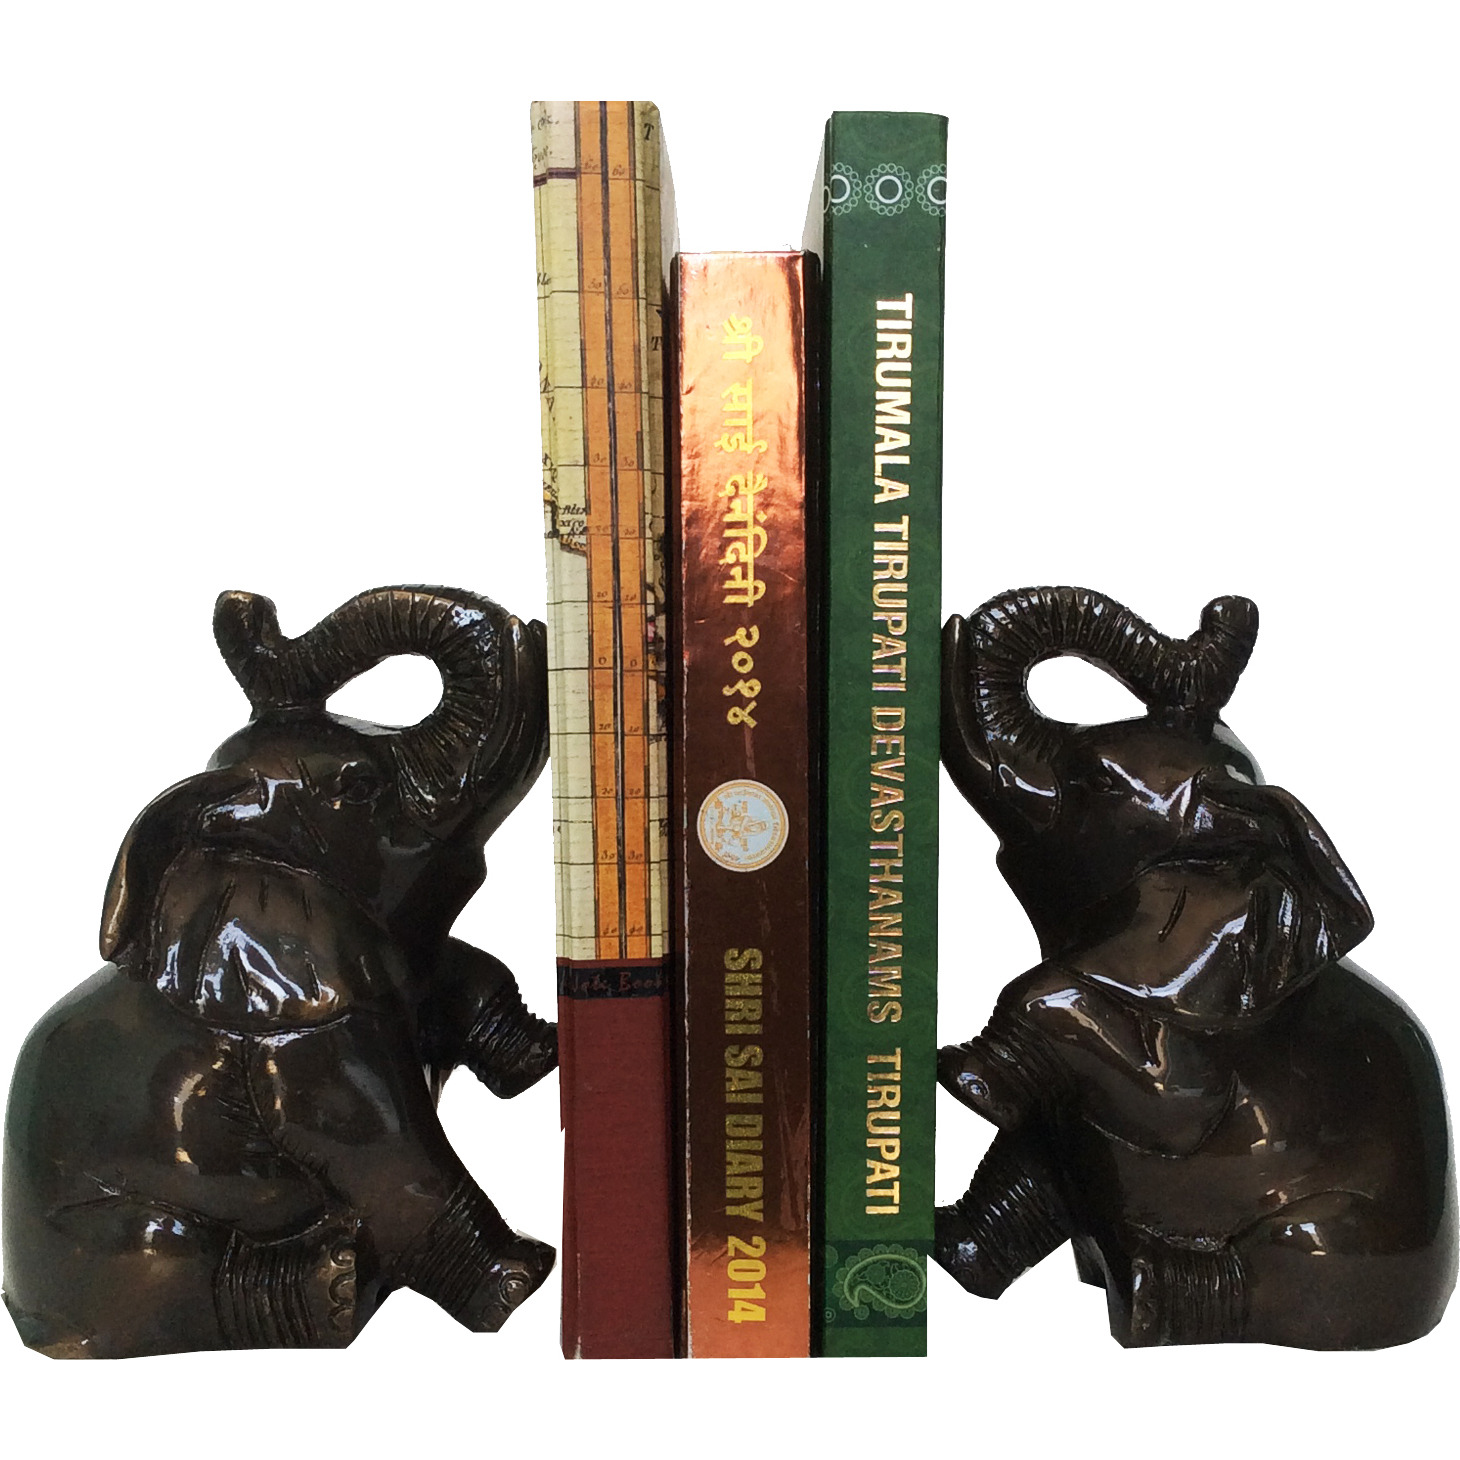 Aakrati Book End of Elephant Figure Brass Made Statue Black